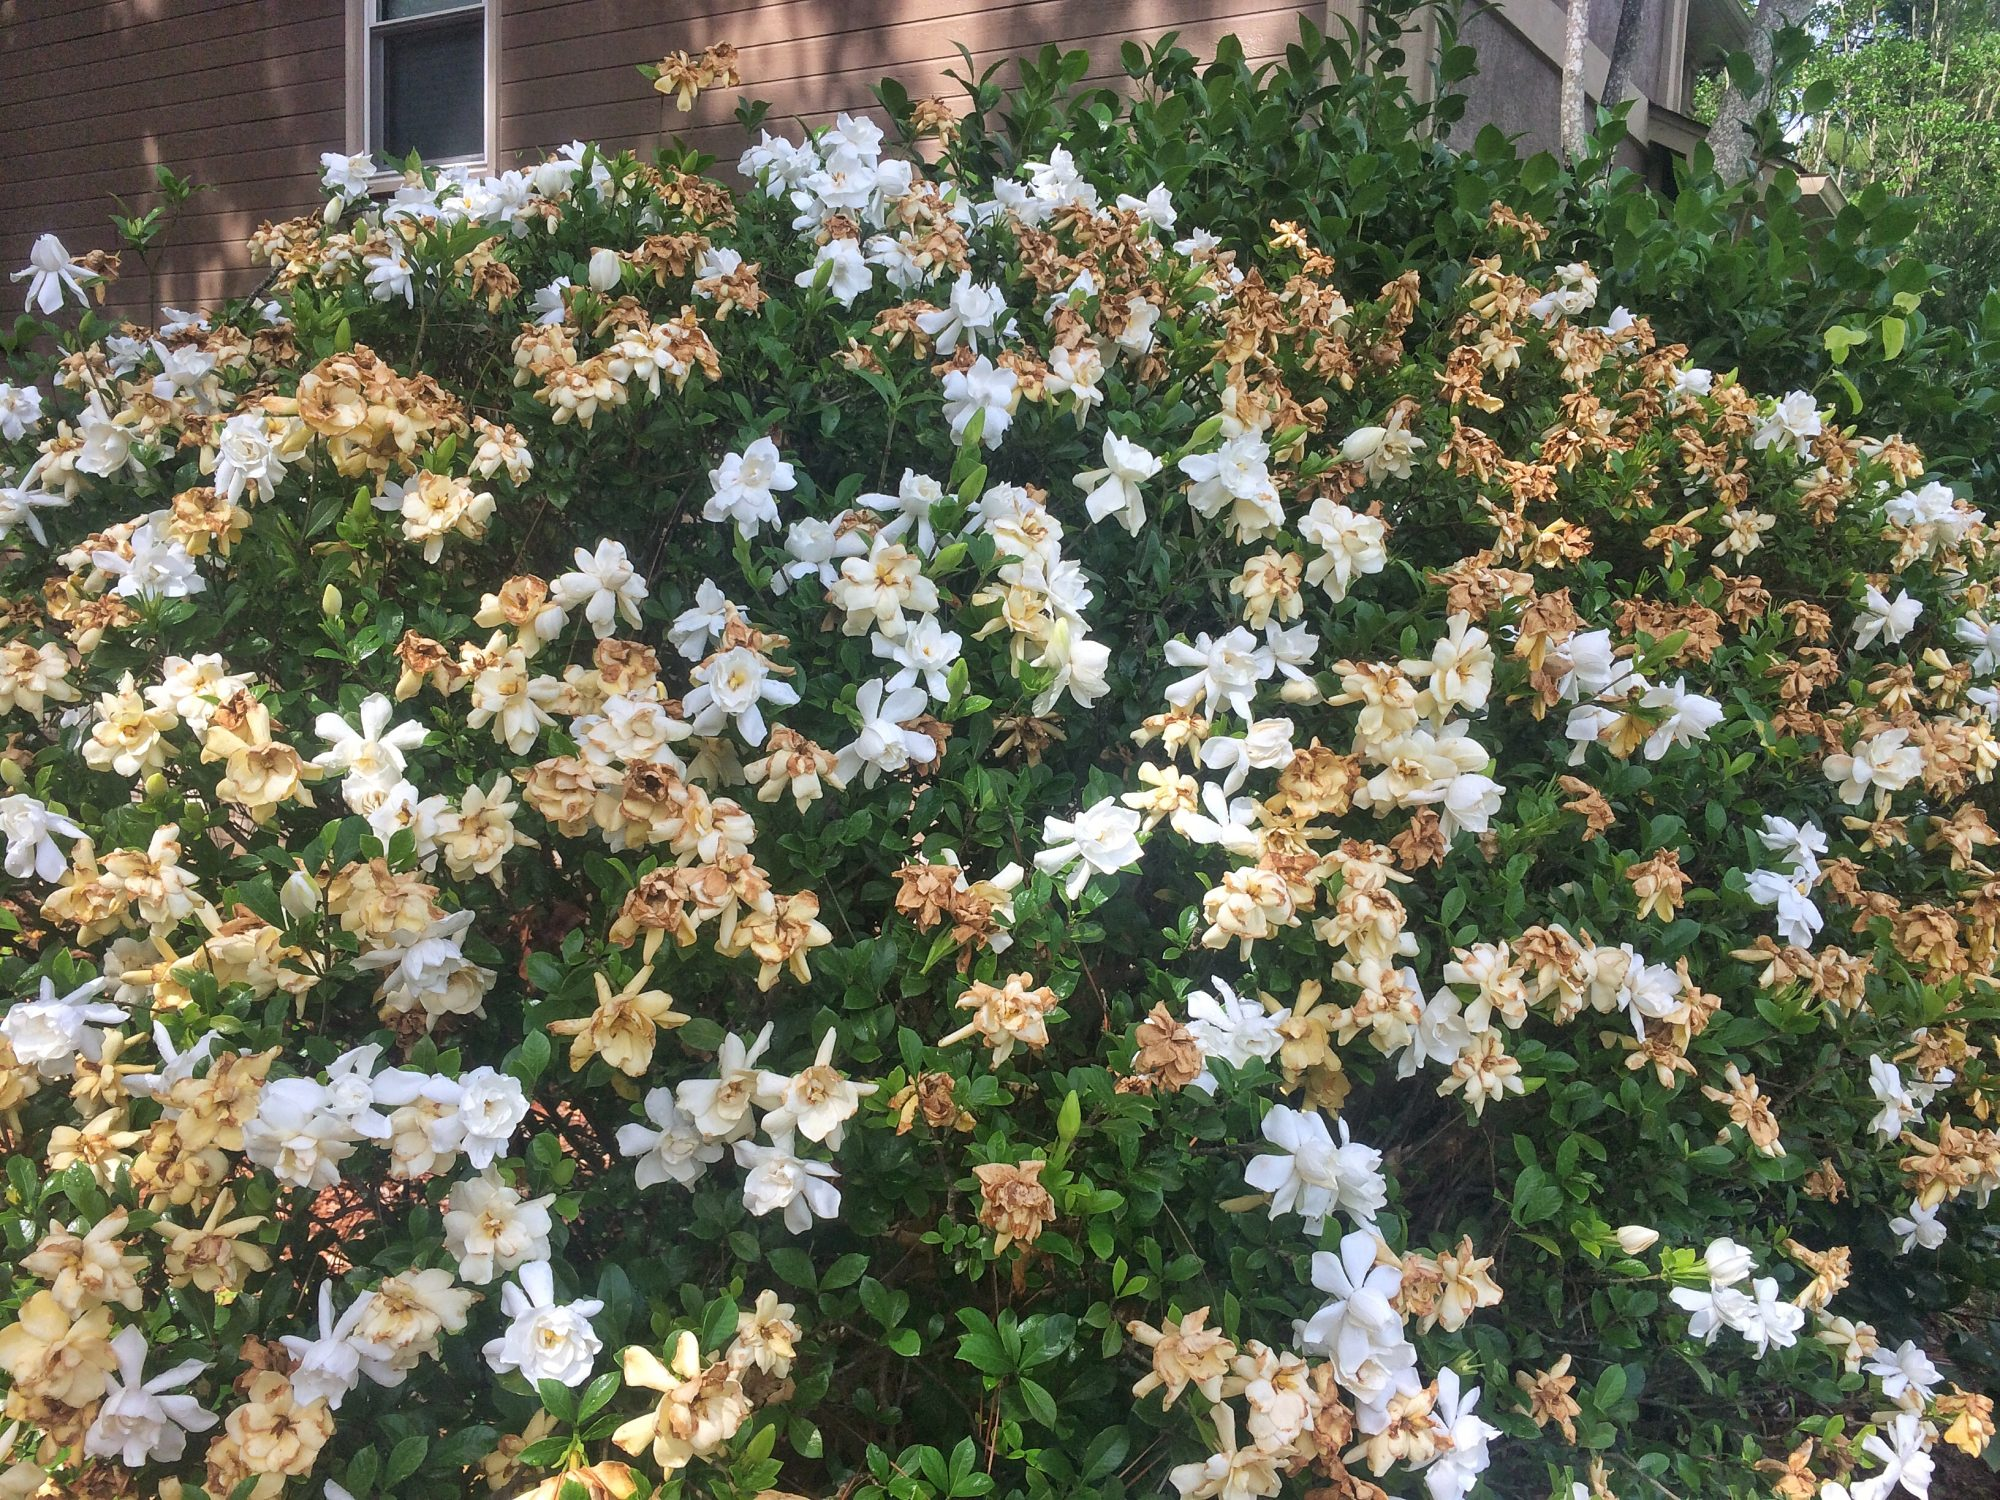 White and Brown Gardenia Flowers